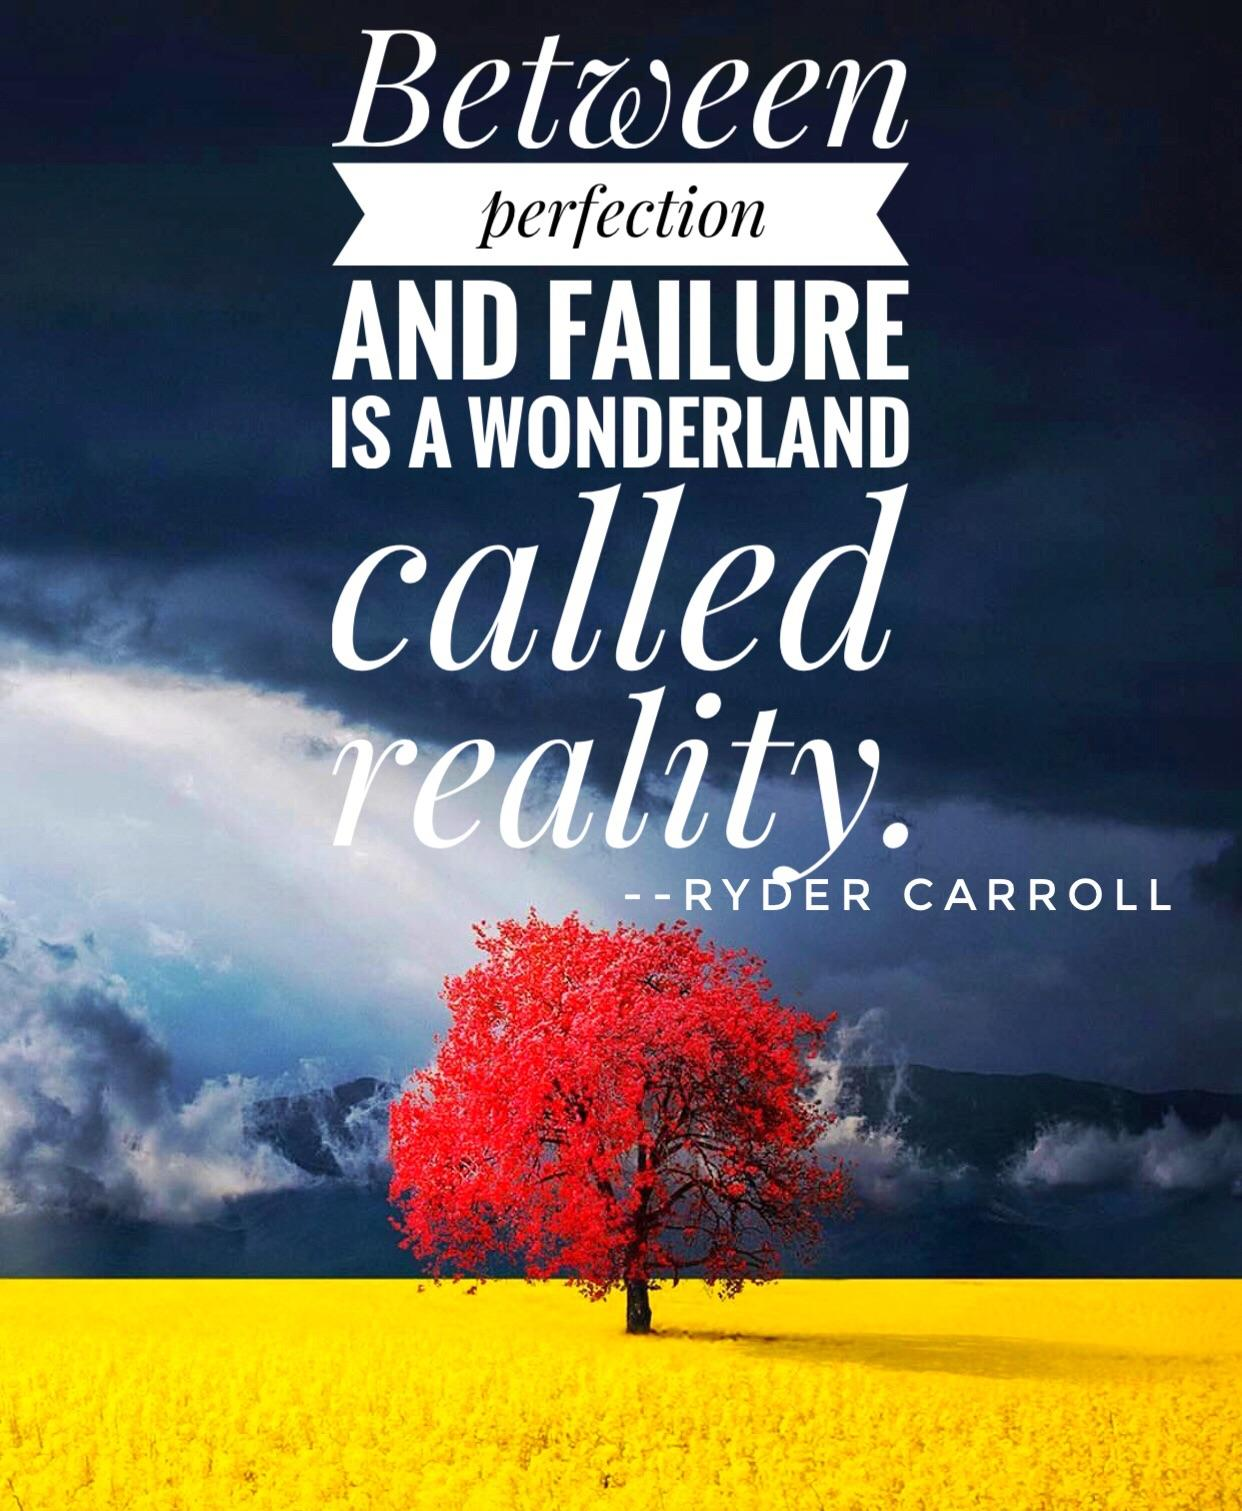 [Image] Between Perfection and Reality is a wonderland called reality.